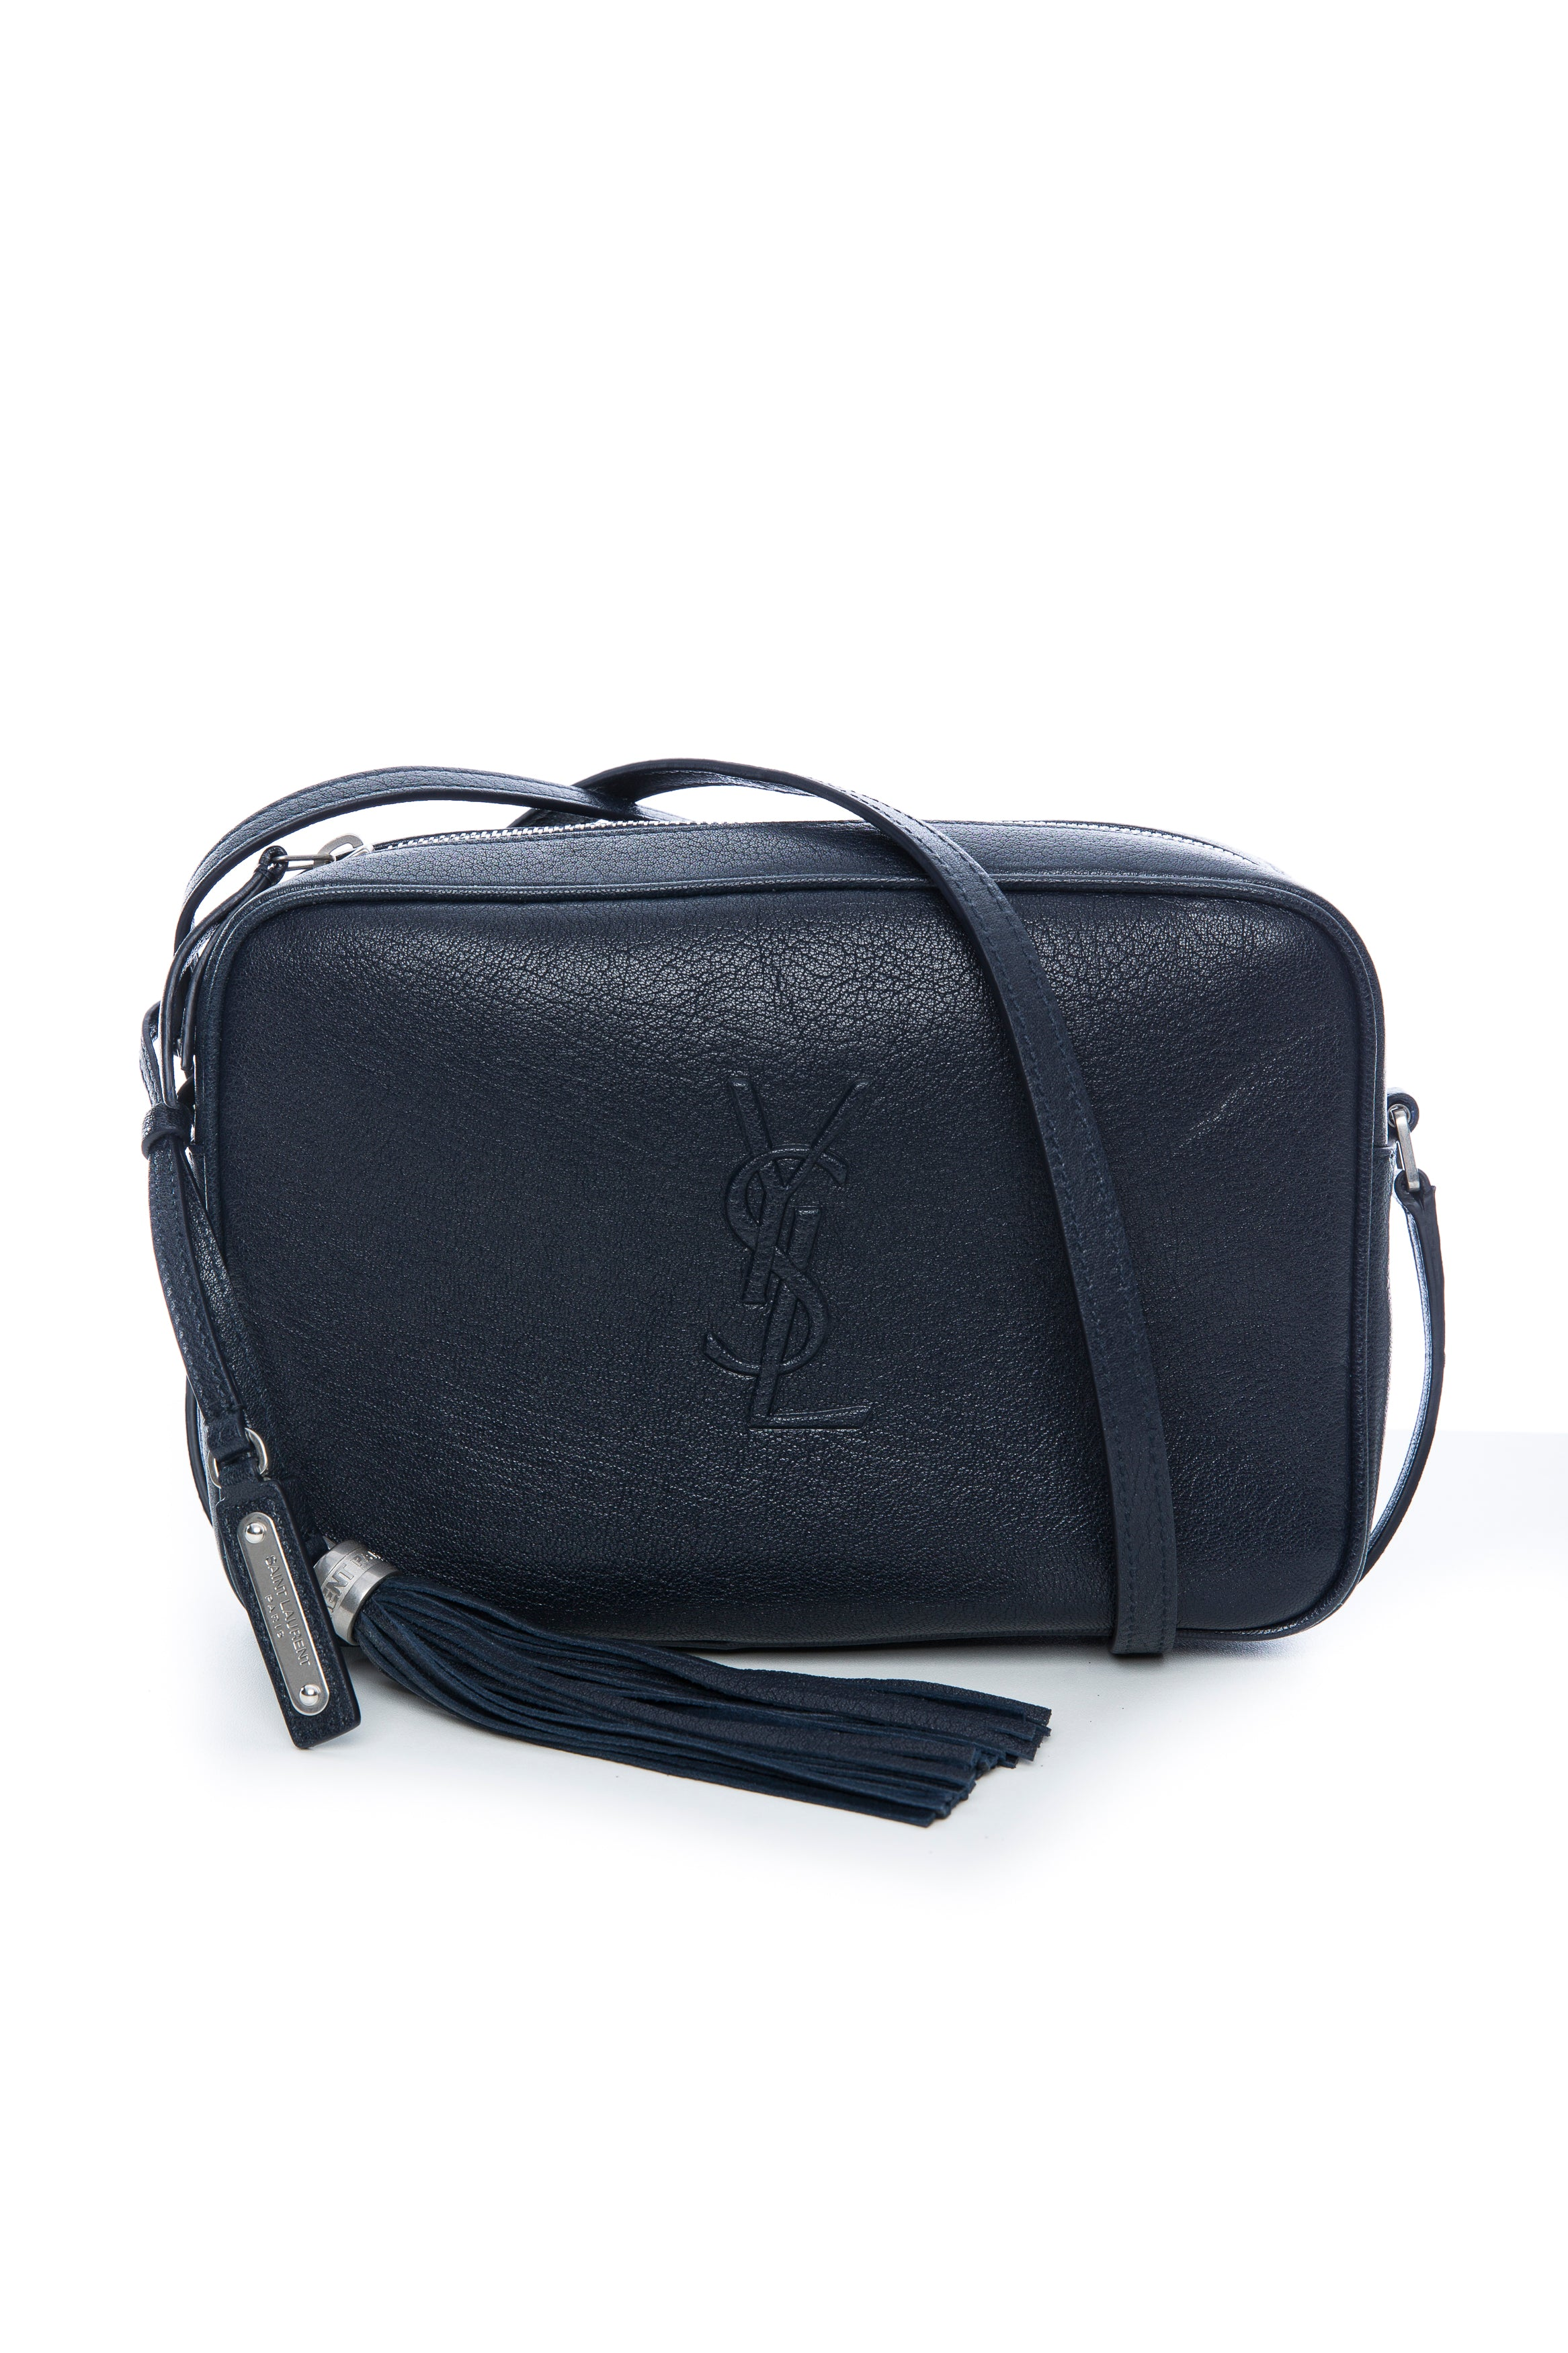 b3f87b187204 SAINT LAURENT LOU CAMERA BAG NAVY – THE STYLE SET